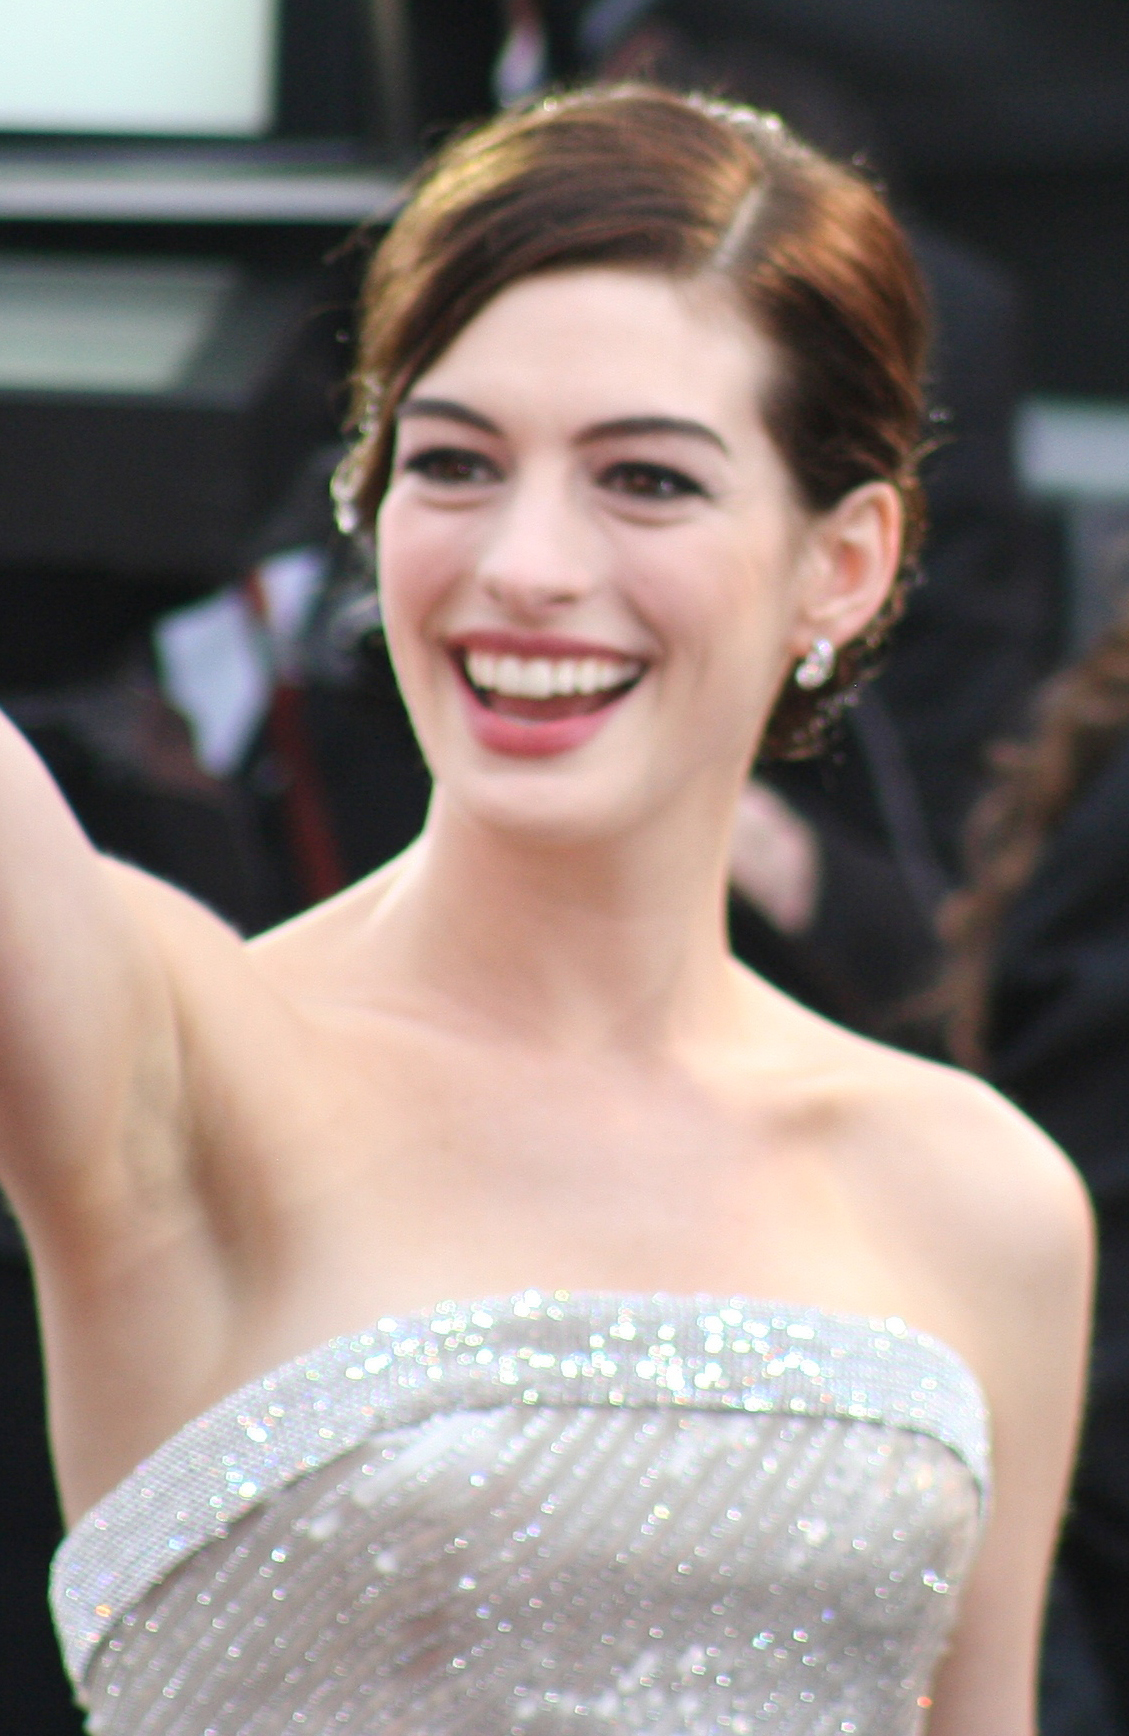 A broadly smiling young woman, wearing a white lame strapless gown and small earrings, waves presumably at a crowd. Her is parted on the left side and pulled up and back, off of her bare shoulders. The background is out of focus and unclear.